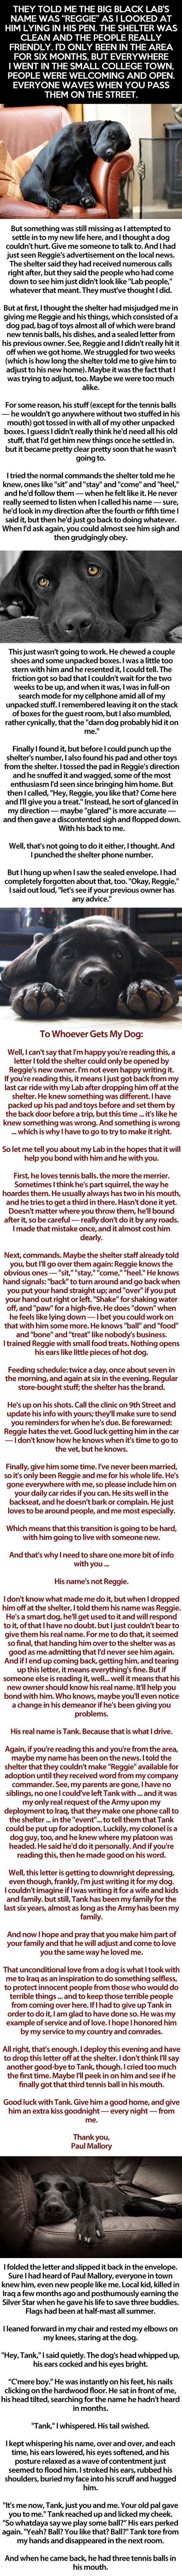 One of my favorite internet finds of all time. Please take the time to read it. It'll probably make you a little misty-eyed. But that's okay.